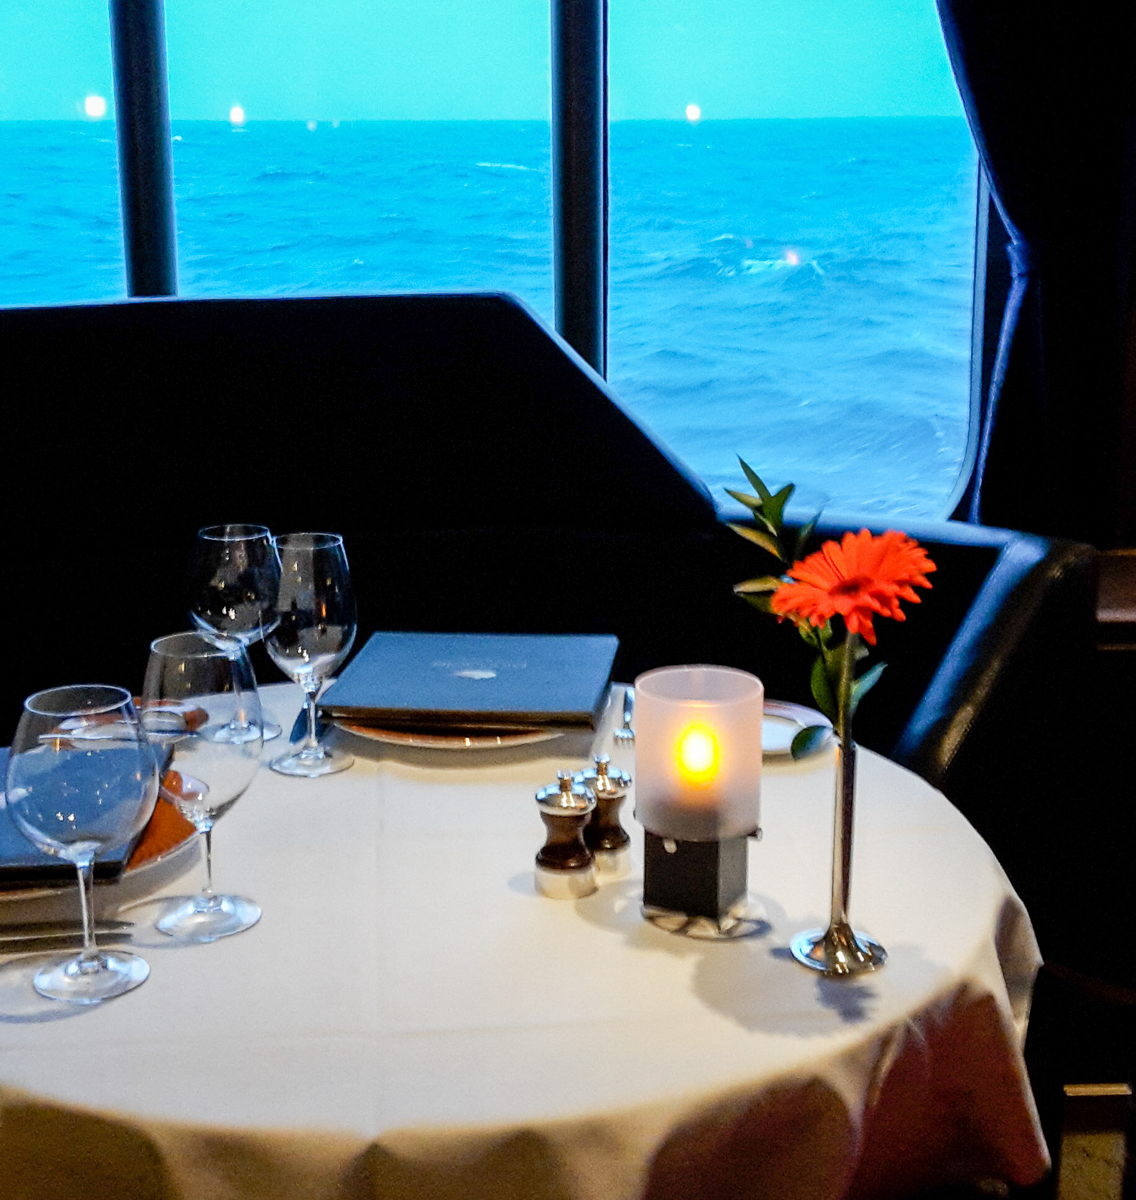 Ocean view at the Pinnacle Grill